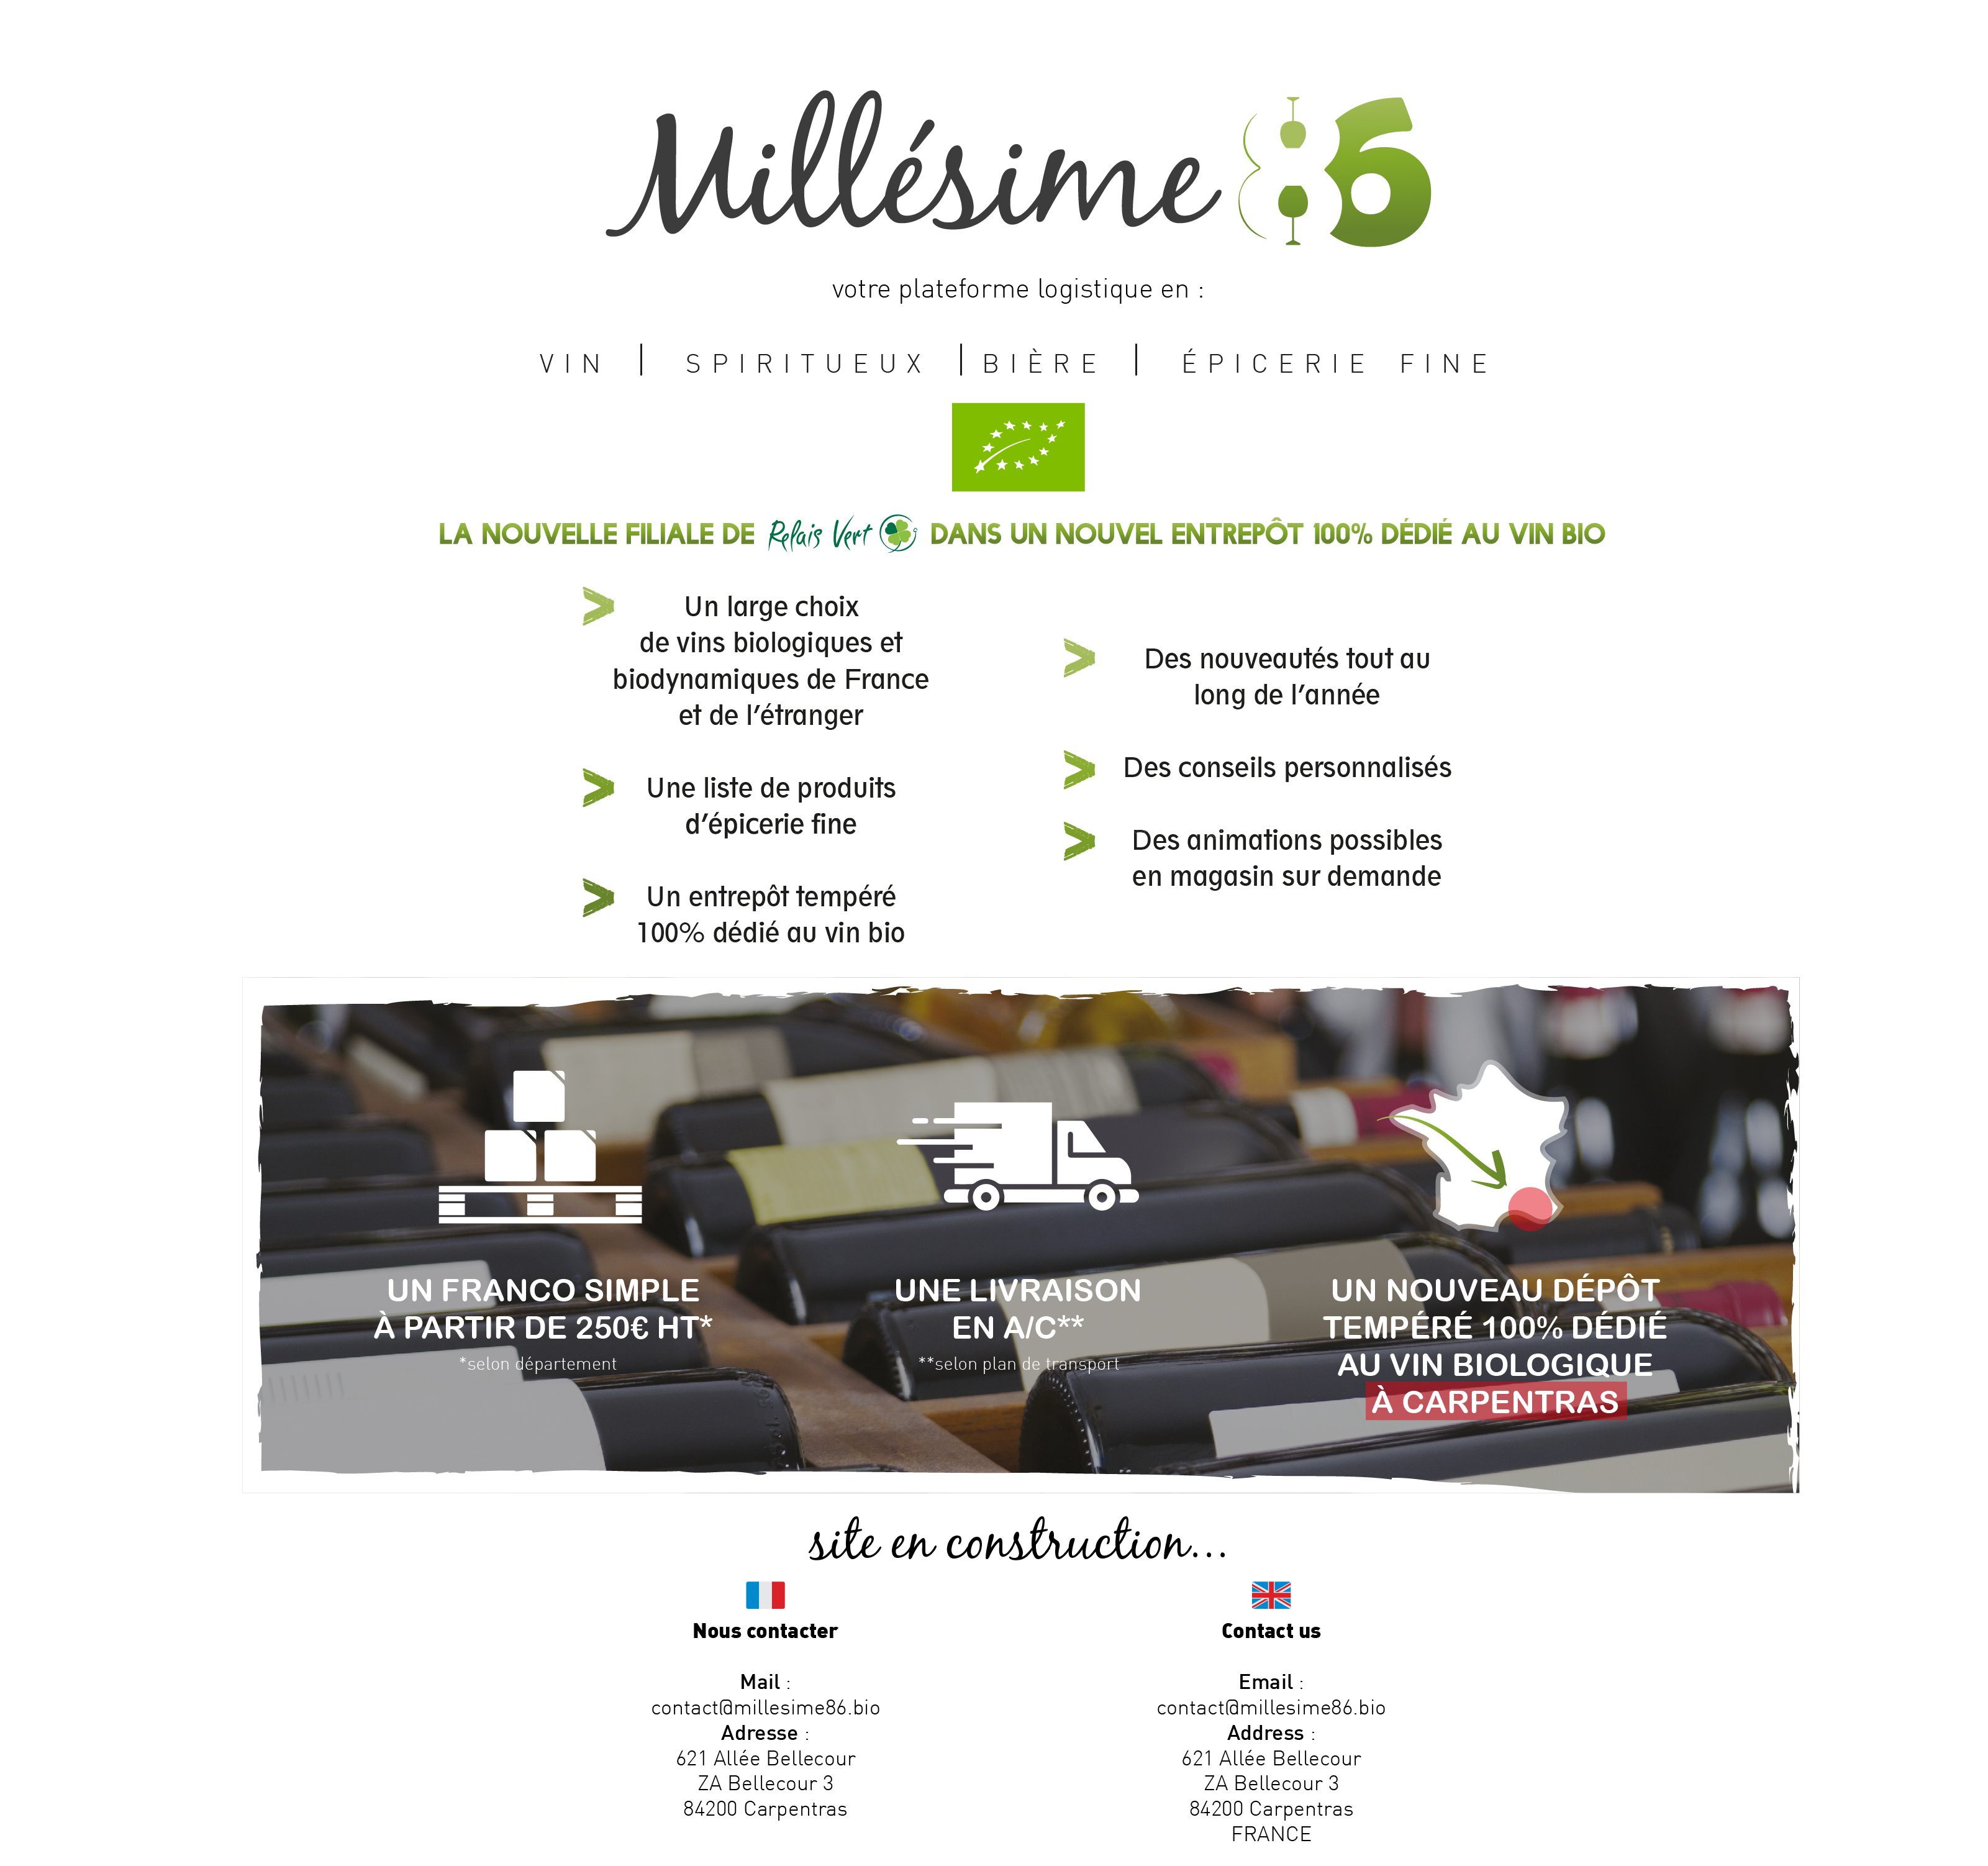 Millesime 86 carpentras